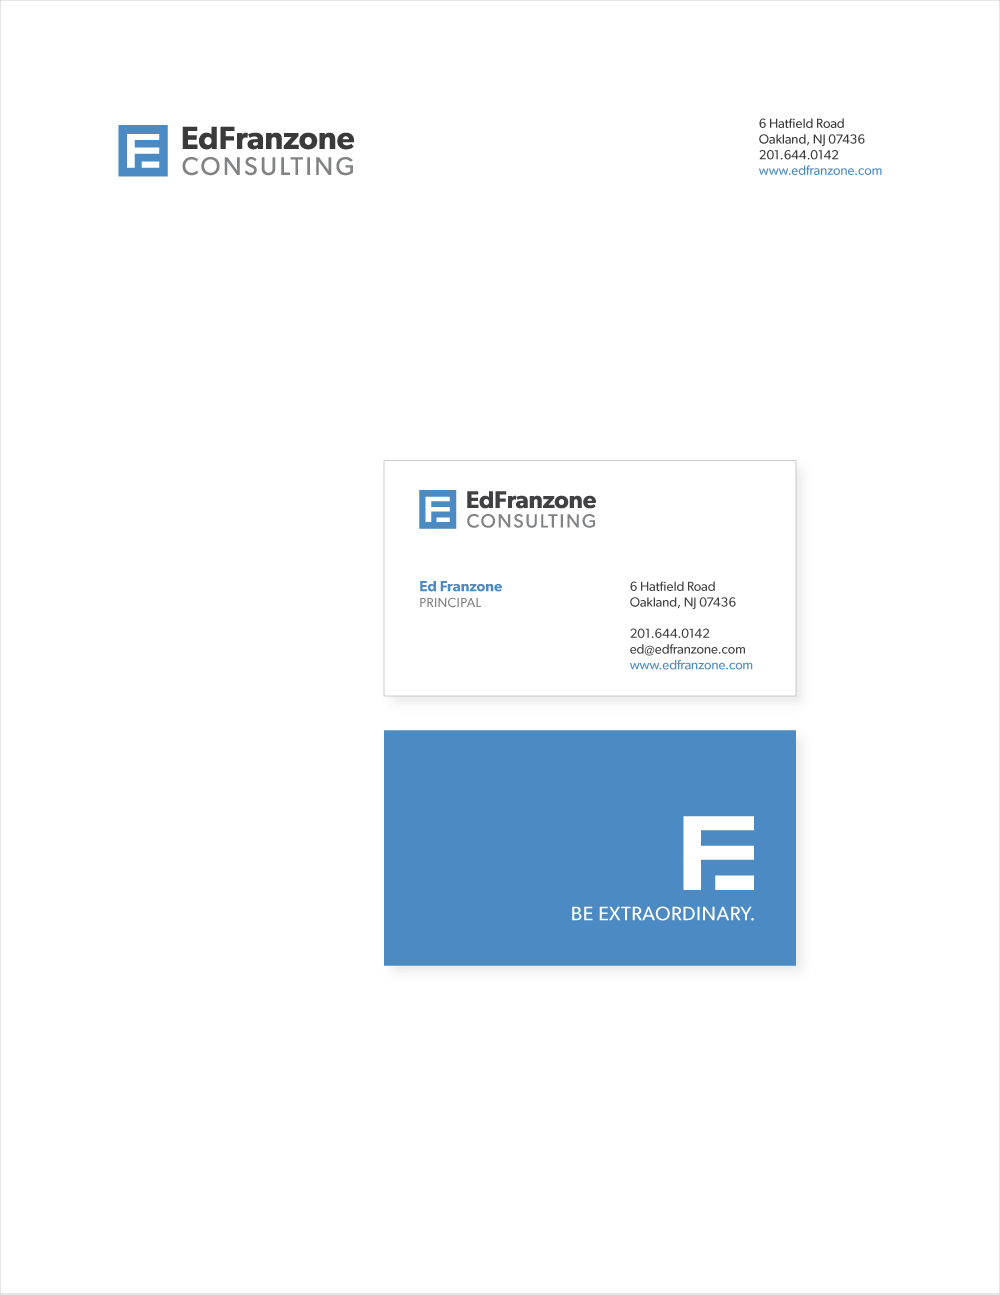 letterhead business cards